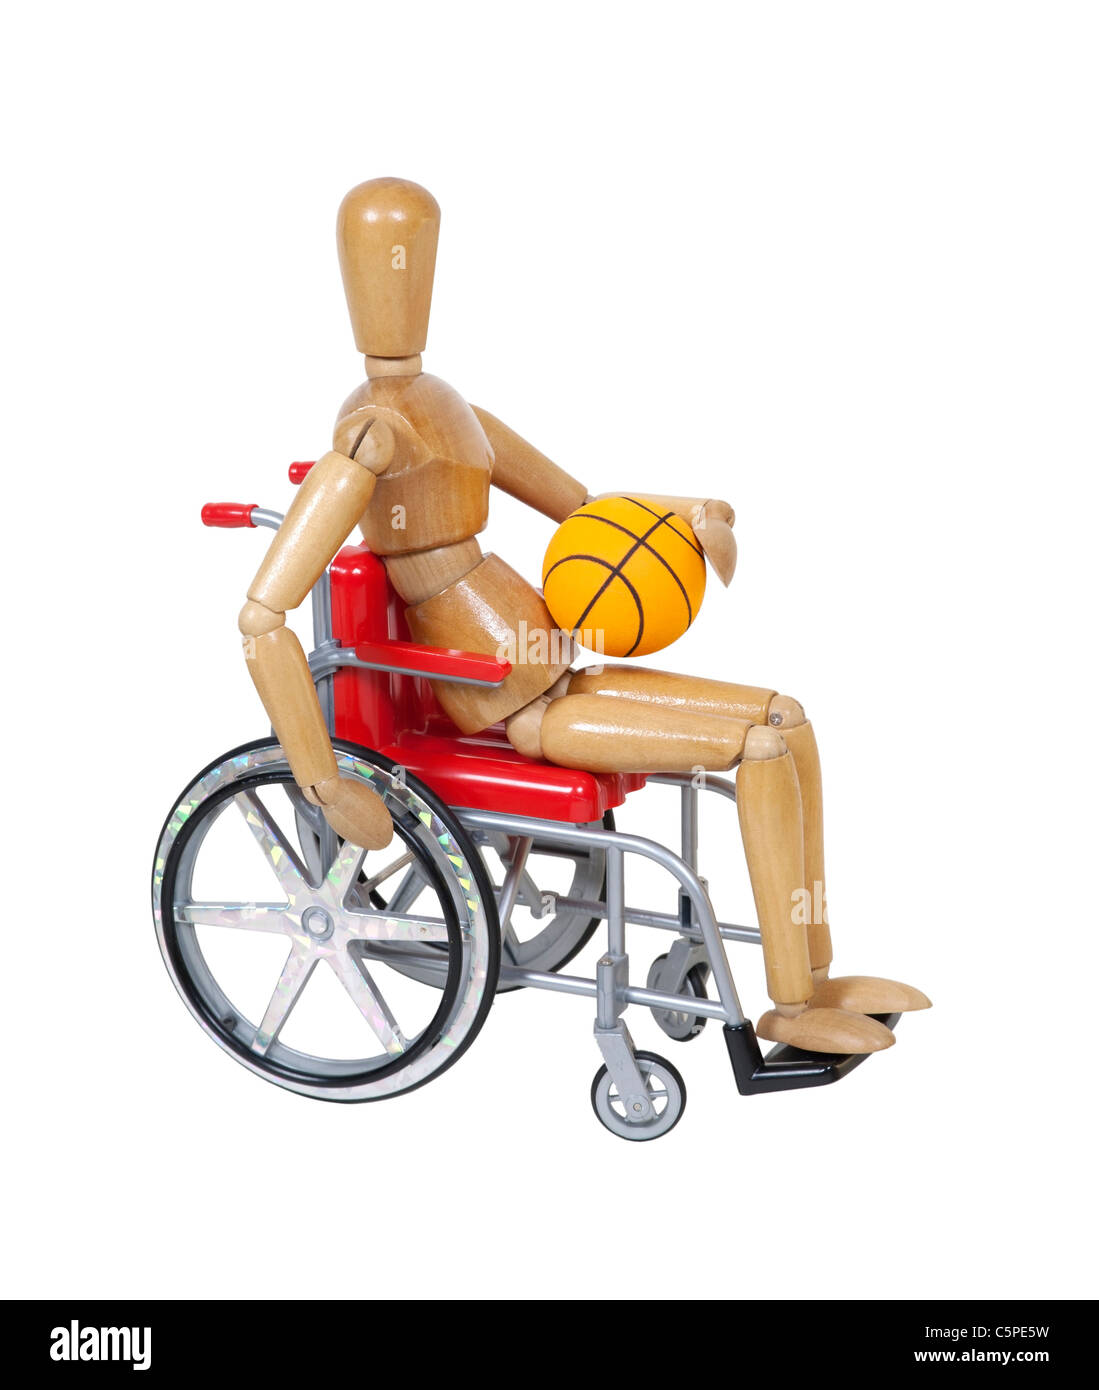 Model in a red wheelchair holding a basketball - path included - Stock Image